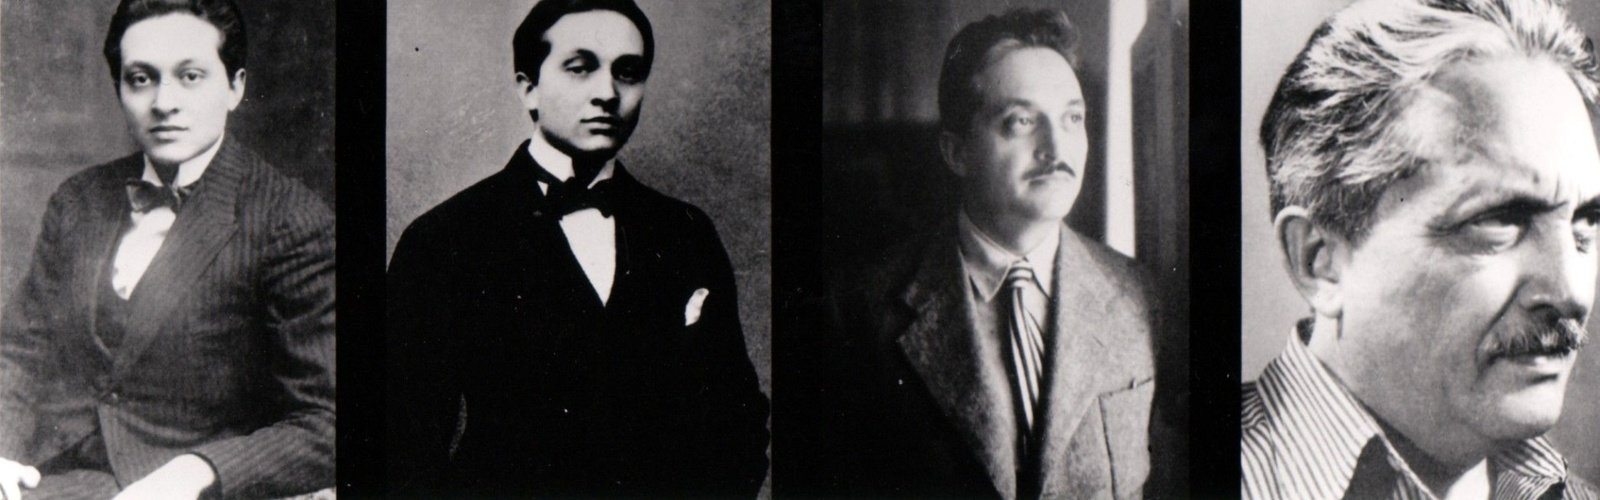 Four portraits of Marcel Janco, dated, from left to right 1915, 1917, 1930, 1960s, Unknown photographers, Josine Ianco-Starrels Collection, Copyright Not Evaluated